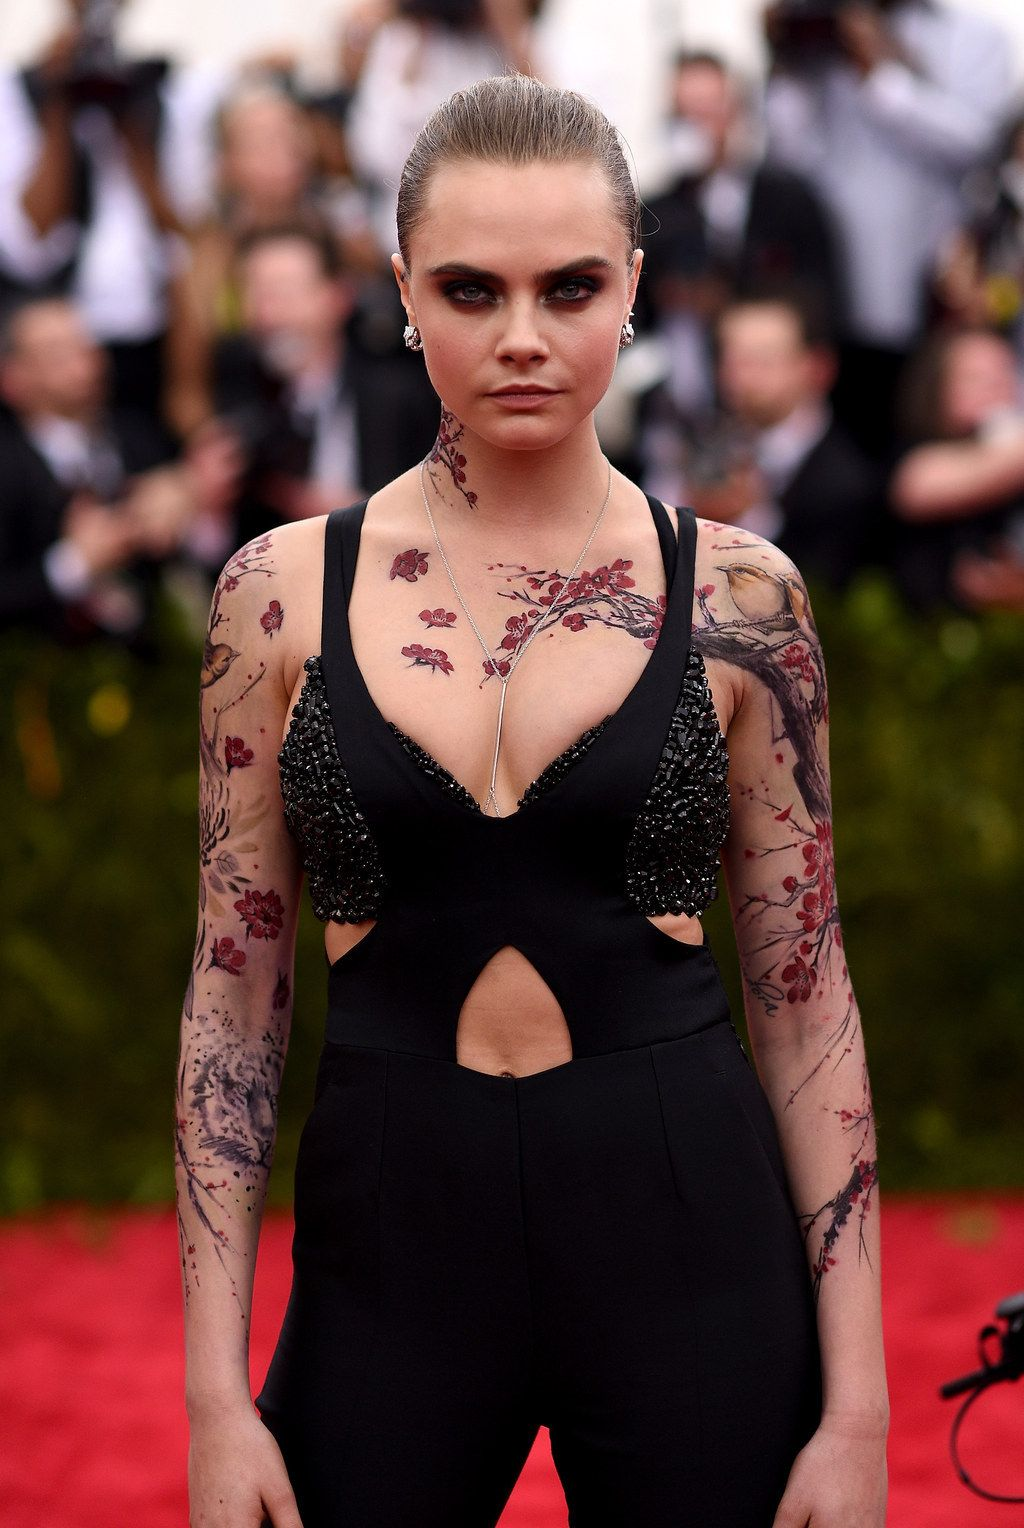 Cara Delevingne Got Tattoo Sleeves For The Met Gala Prom Cara